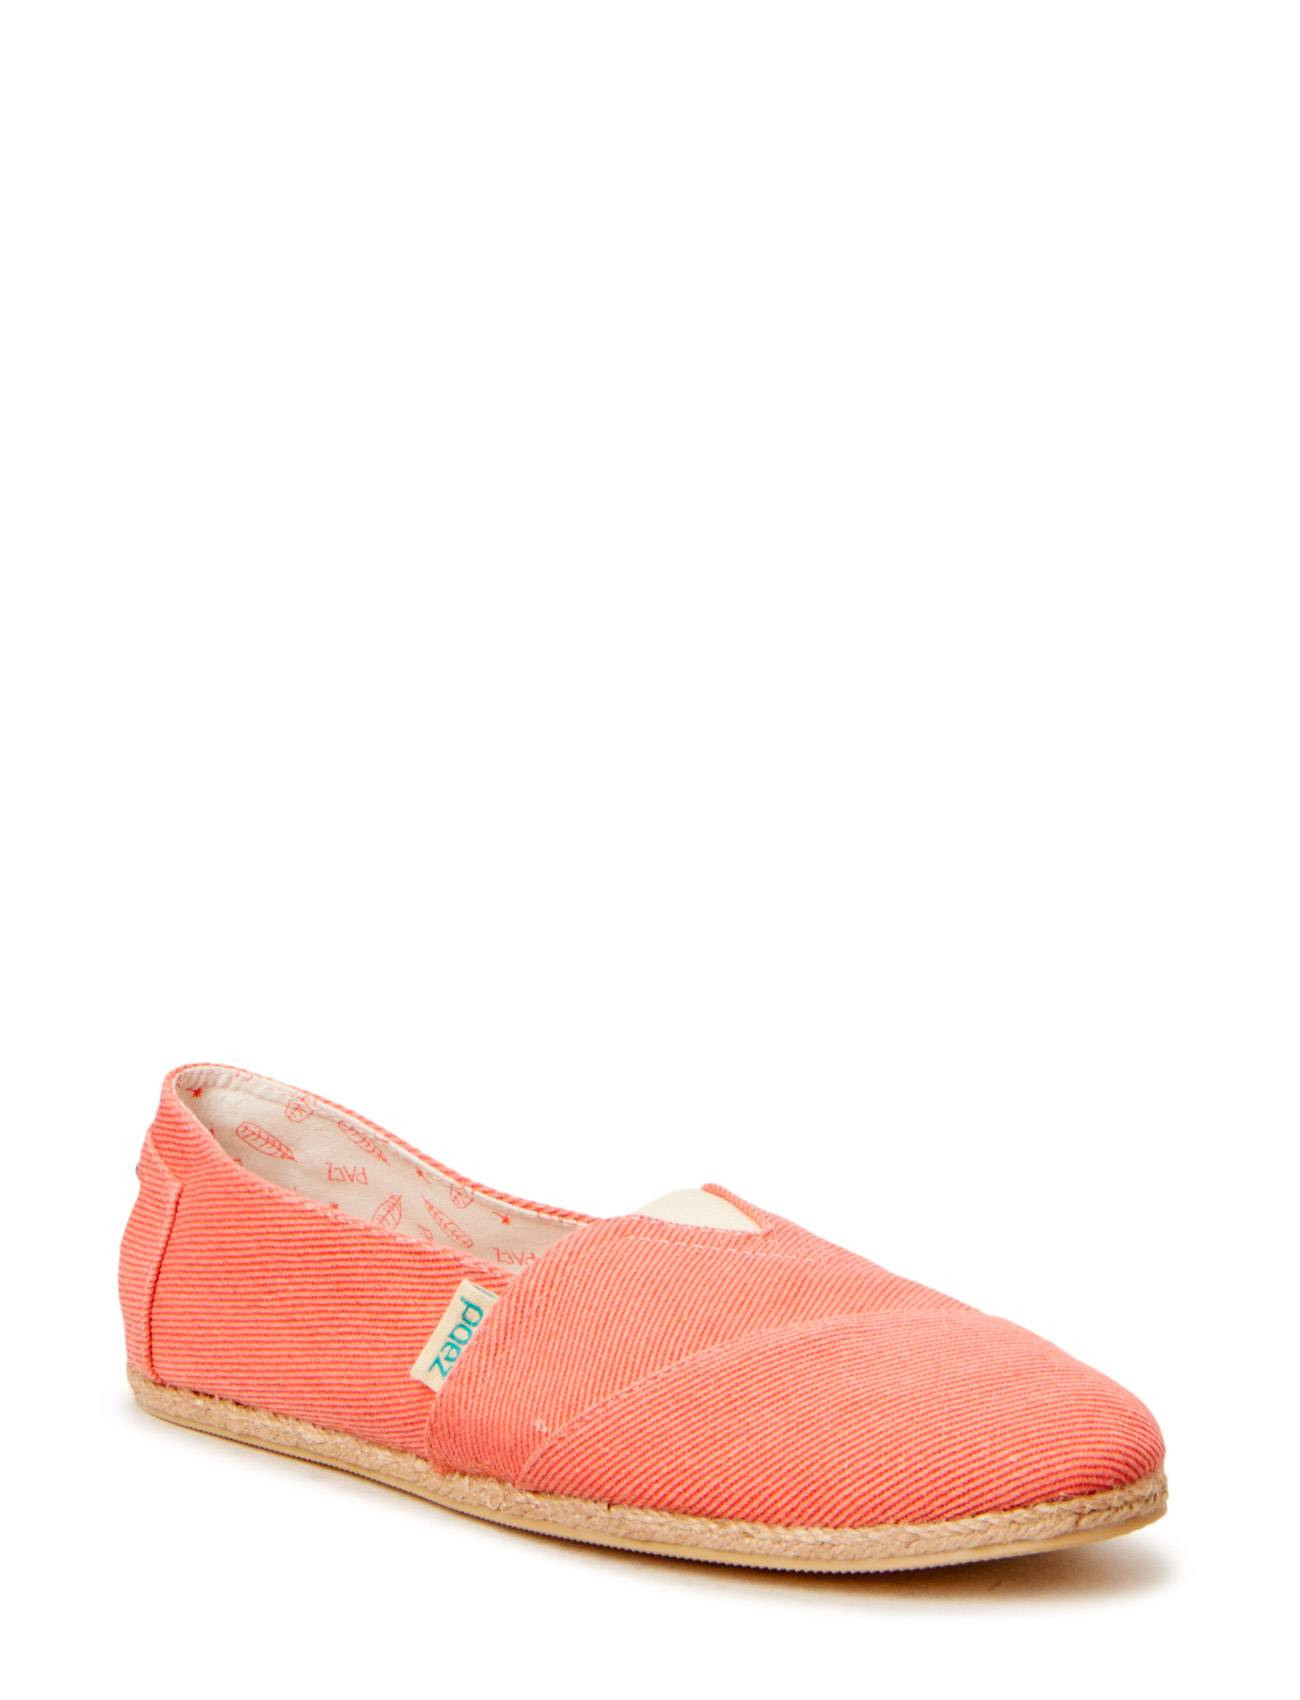 Paez Espadrillos Paez Original Raw - Essentials